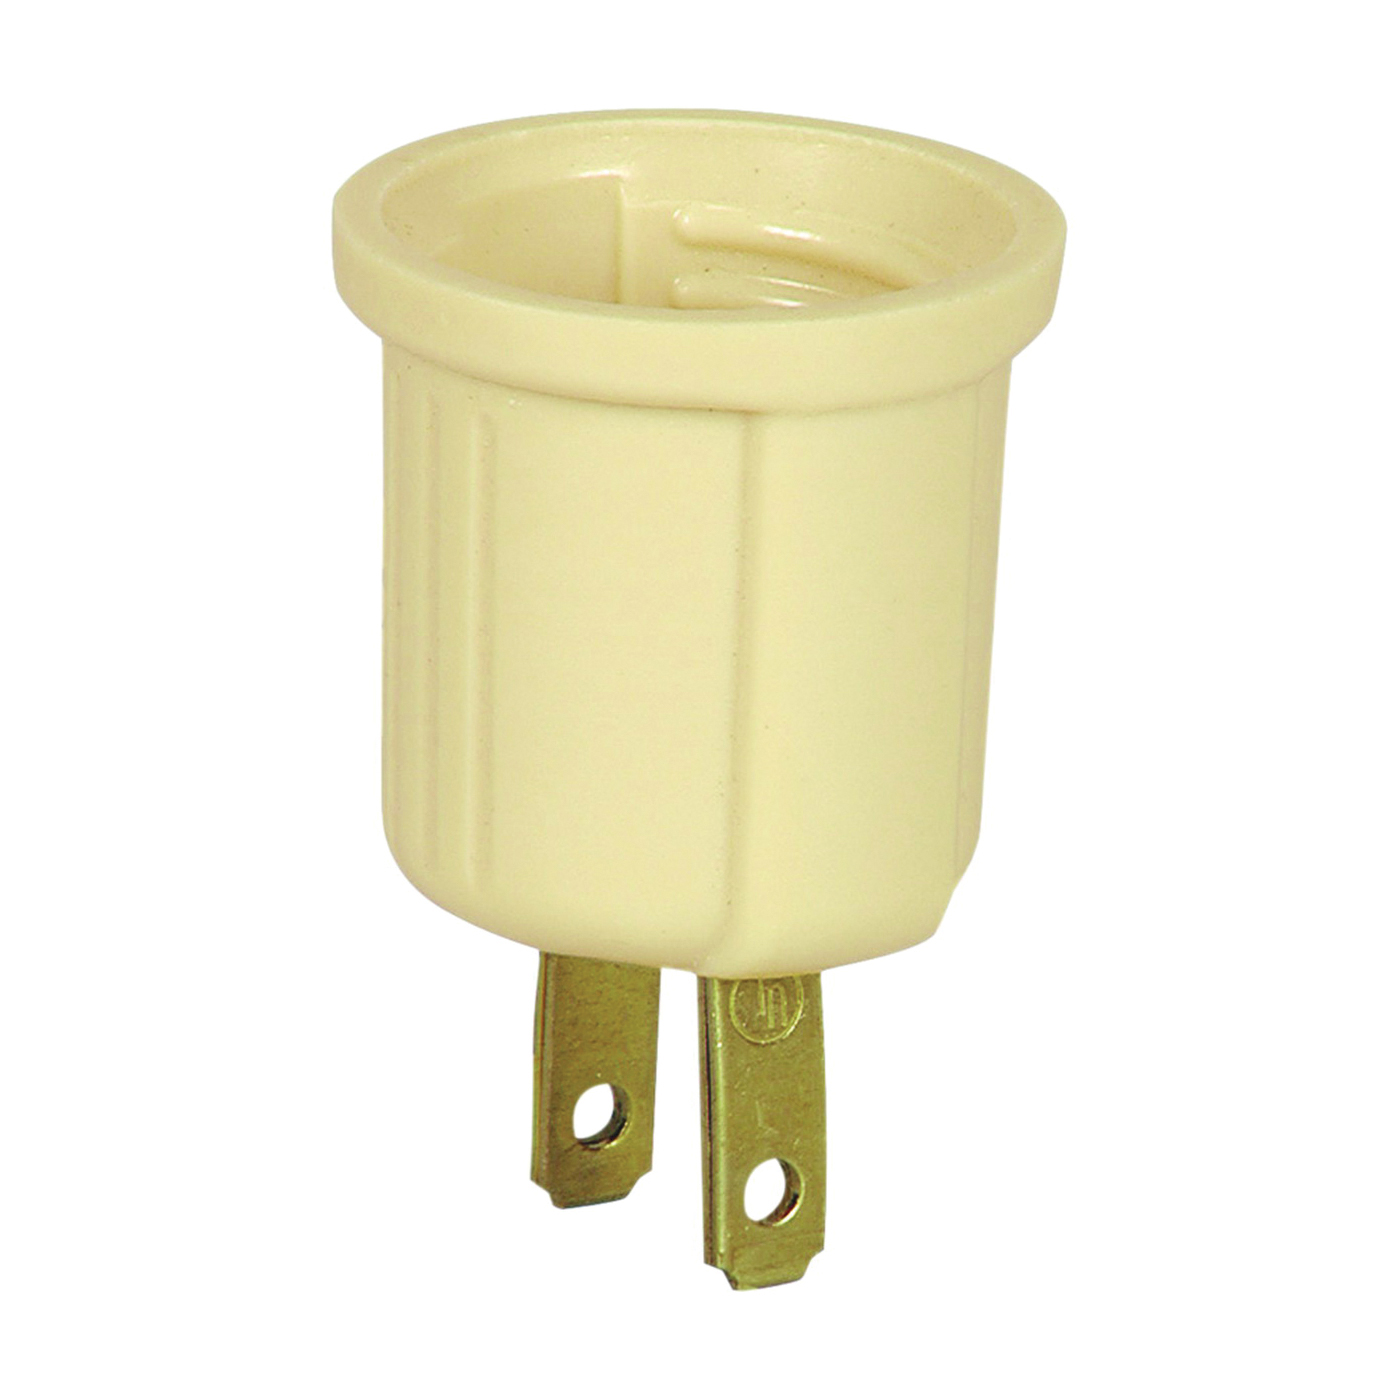 Picture of Eaton Wiring Devices BP738V Lampholder Adapter, 660 W, 2-Outlet, Thermoplastic, Ivory